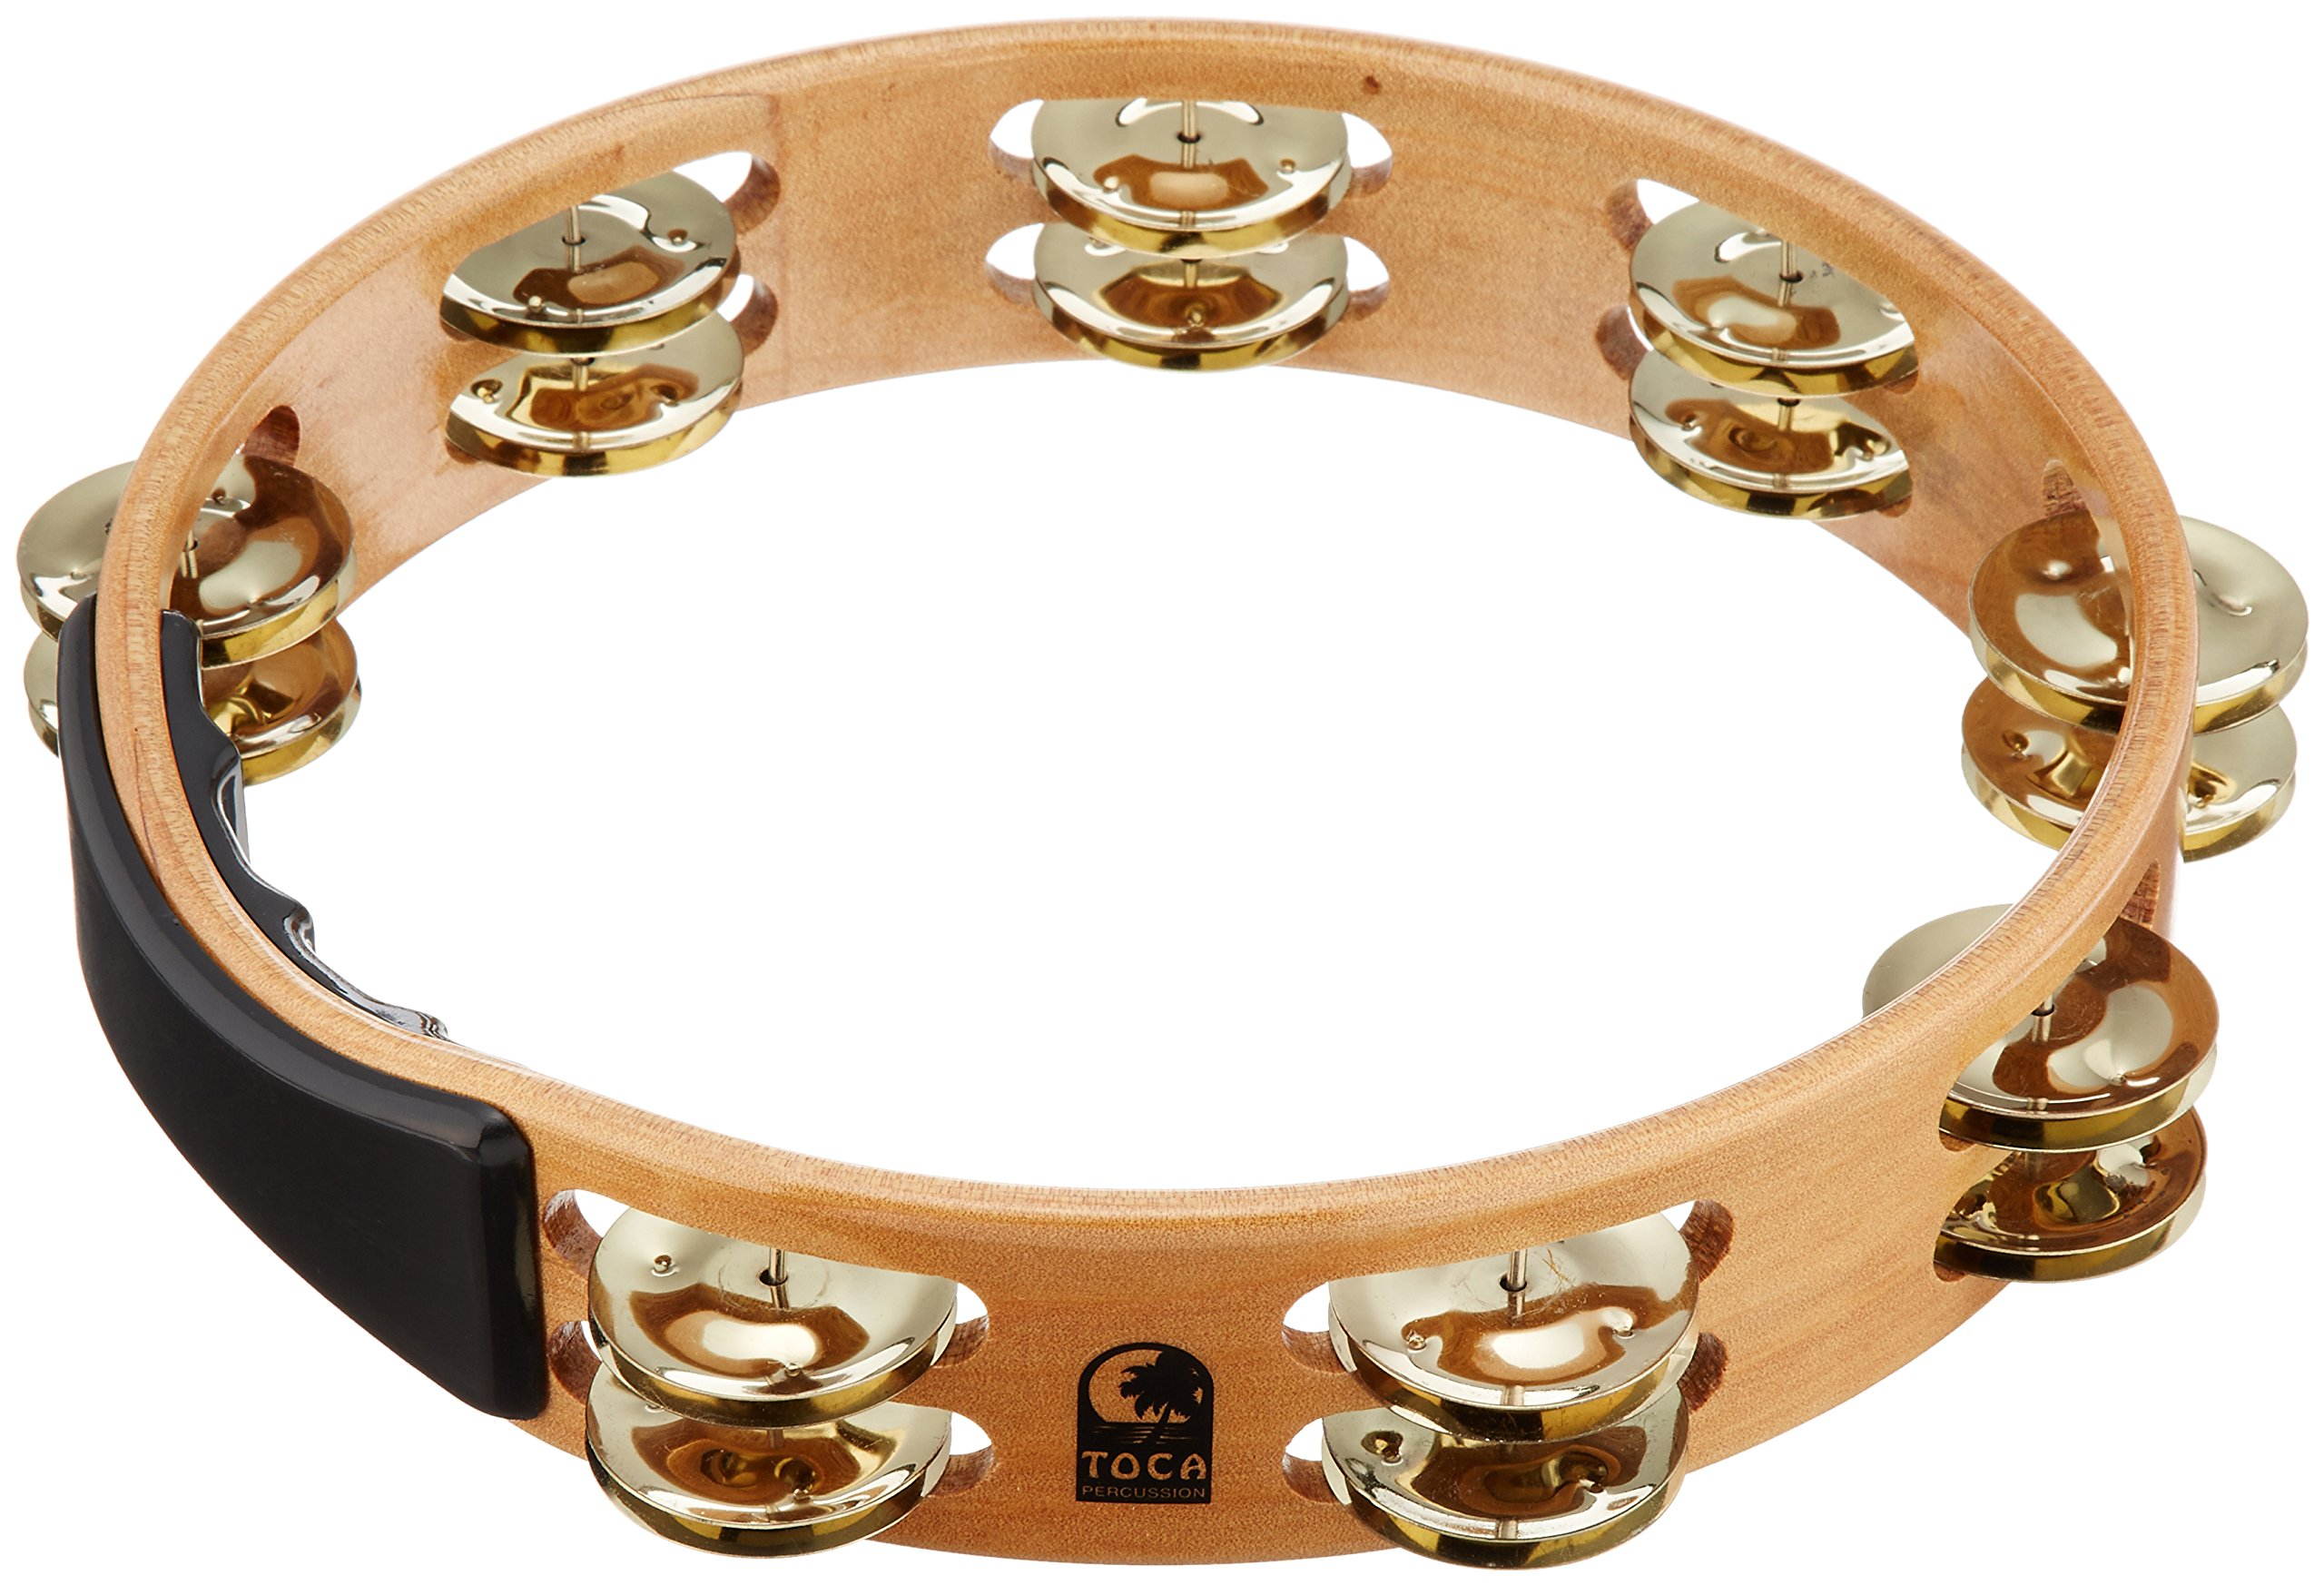 Toca Acacia Tambourine With Brass Jingles 10 Inch